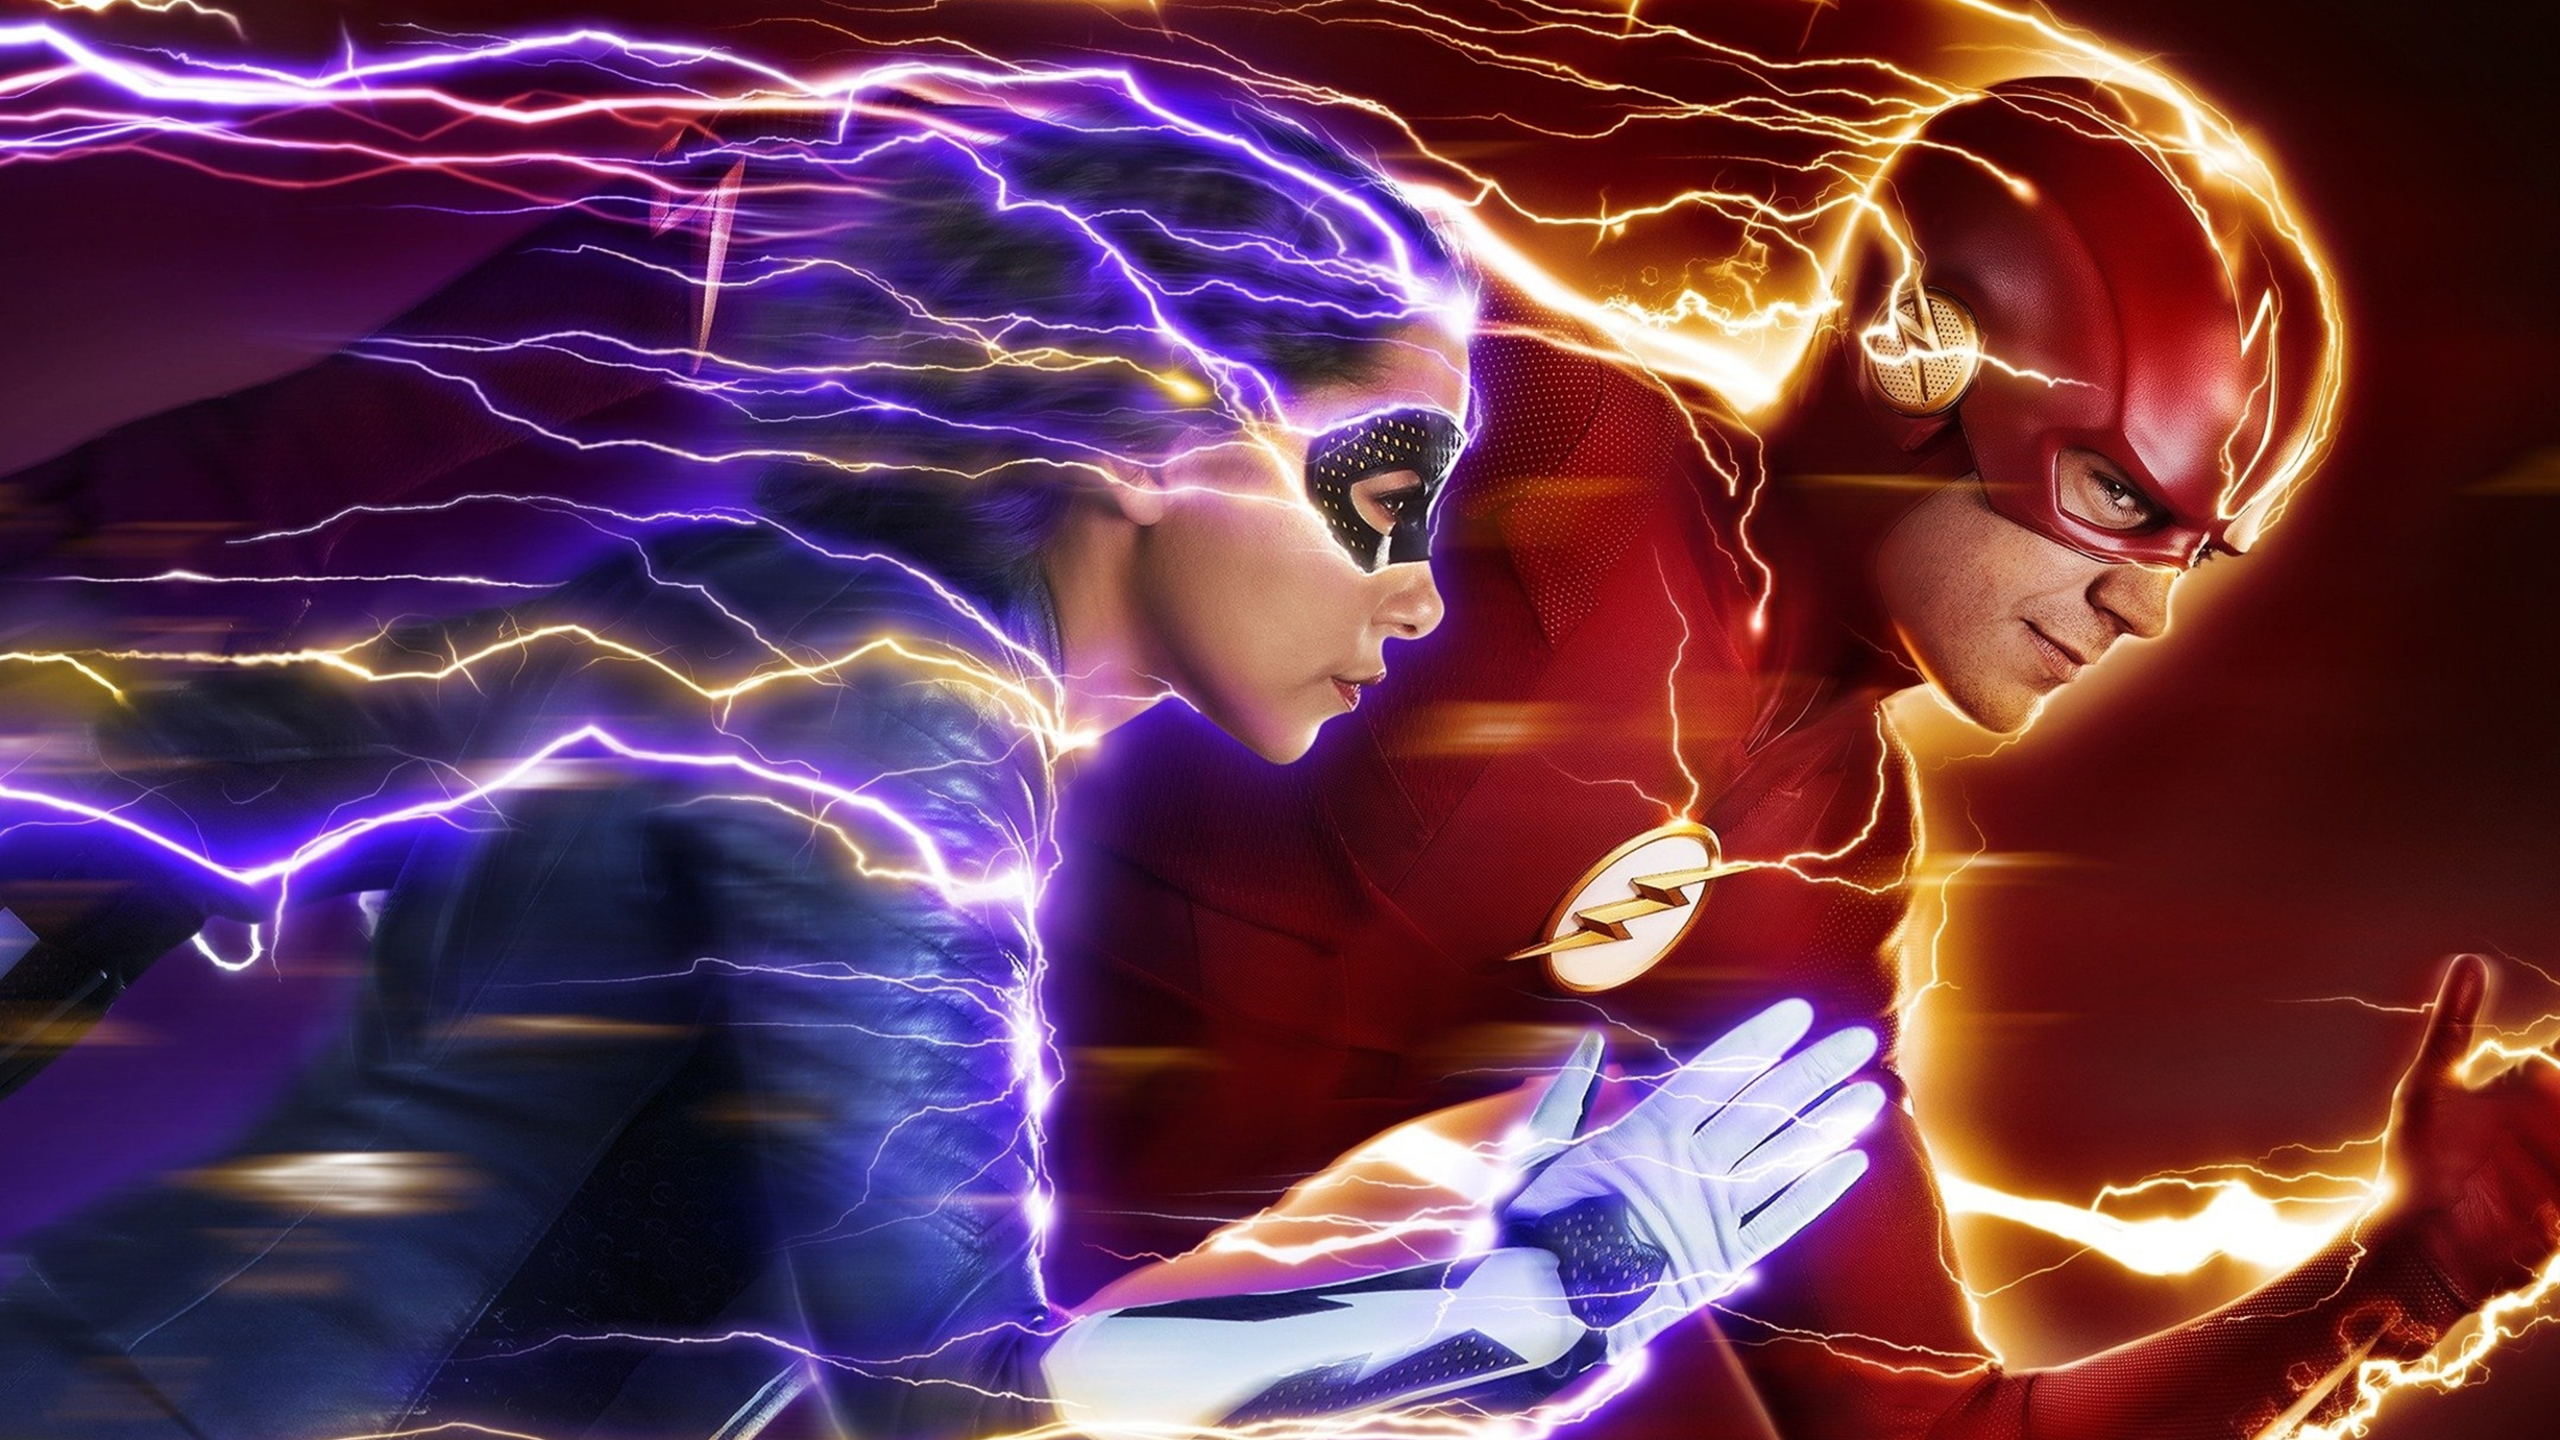 Free Download Supergirl Season 4 4k Wallpapers Hd Wallpapers 2560x1440 For Your Desktop Mobile Tablet Explore 21 The Flash Season 4 Wallpapers The Flash Season 4 Wallpapers Wallpaper The Flash The Flash Wallpaper